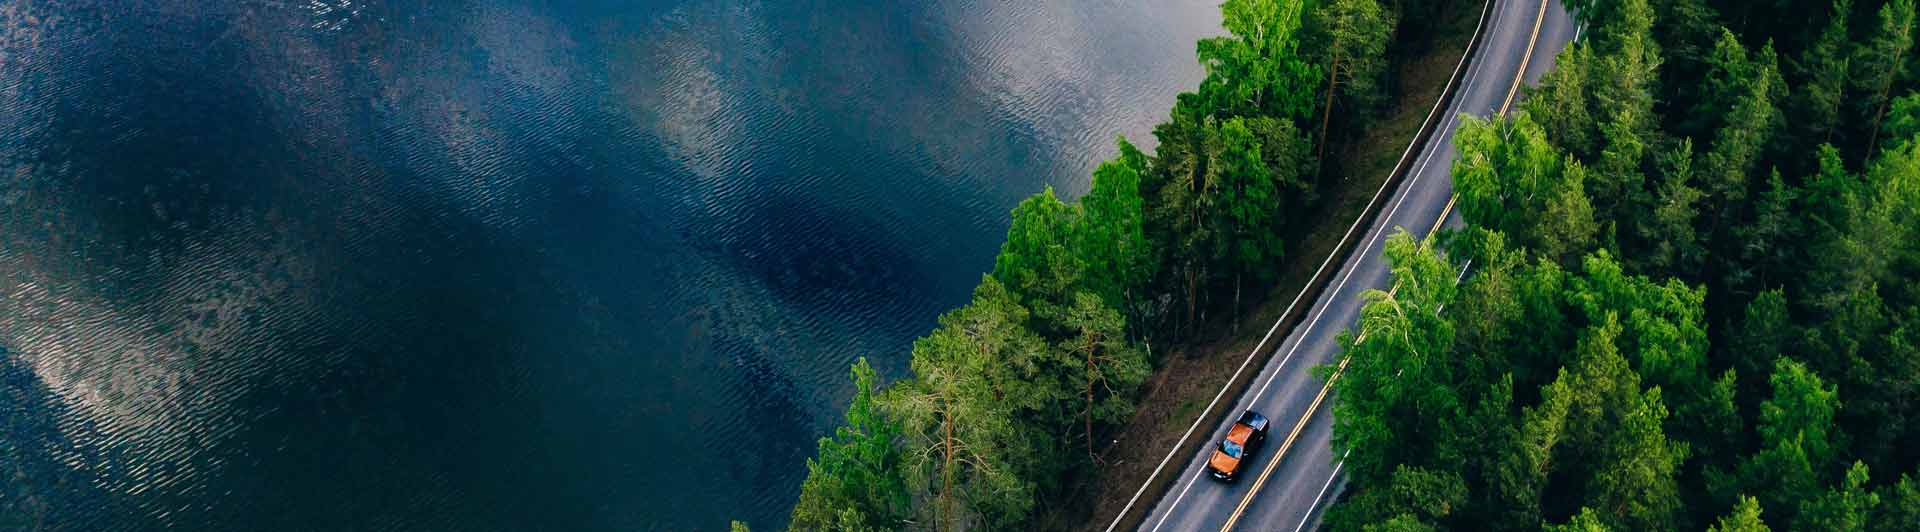 Birdseye view of a highway along a forest and lake